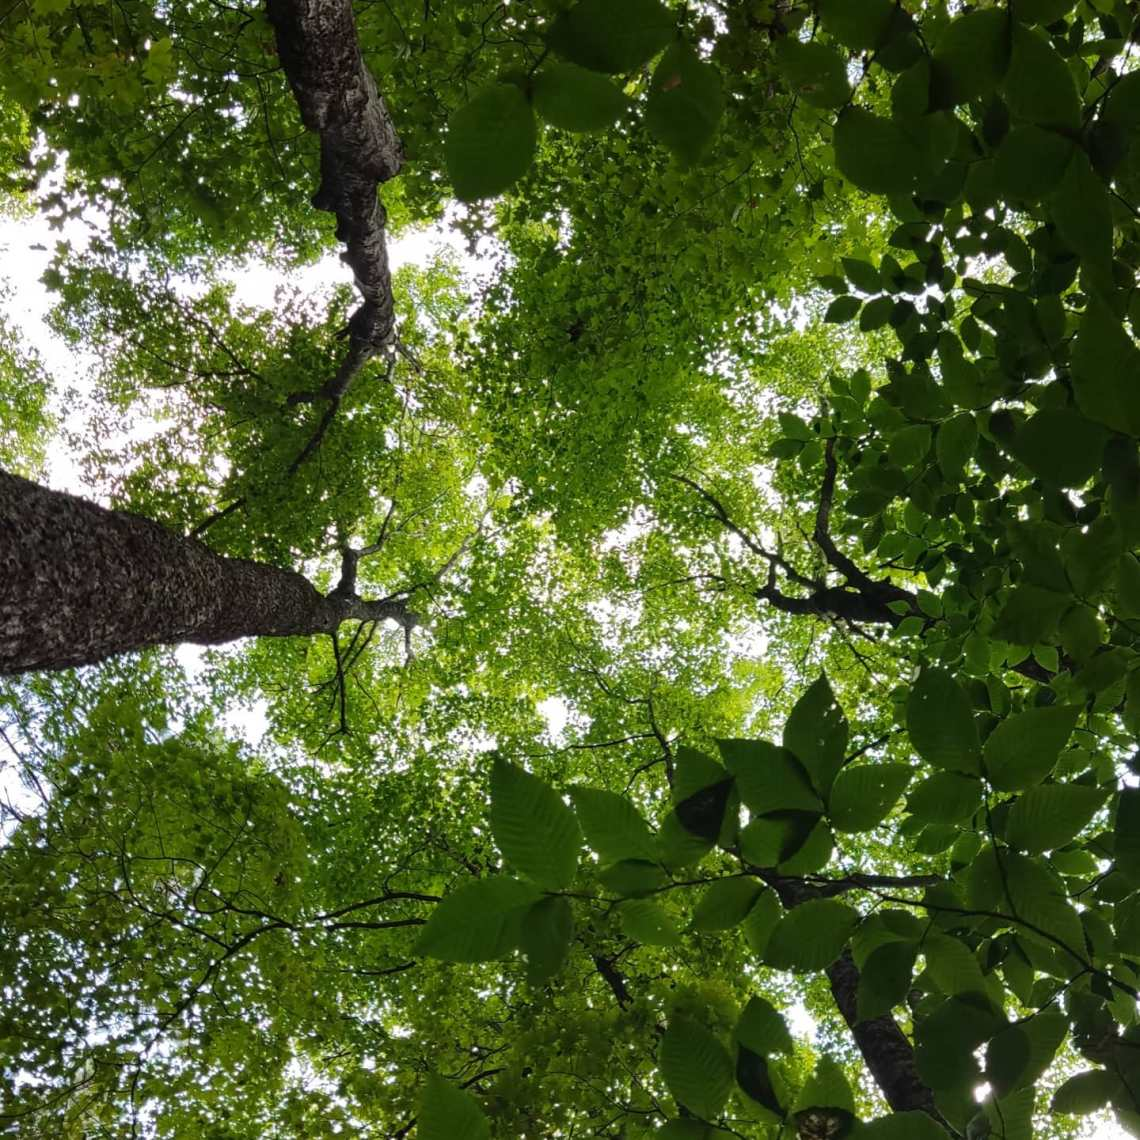 In Japan there's a word for sky seen through leaves. Could be inspiration for a bonbon. Relaxing in my hammock after lunch on the trail somewhat west of Vermont's White River. A couple more miles today and we'll find a place in the woods for the night. Eating much chocolate--the prefect trail food. #chocolatier #appalachiantrail